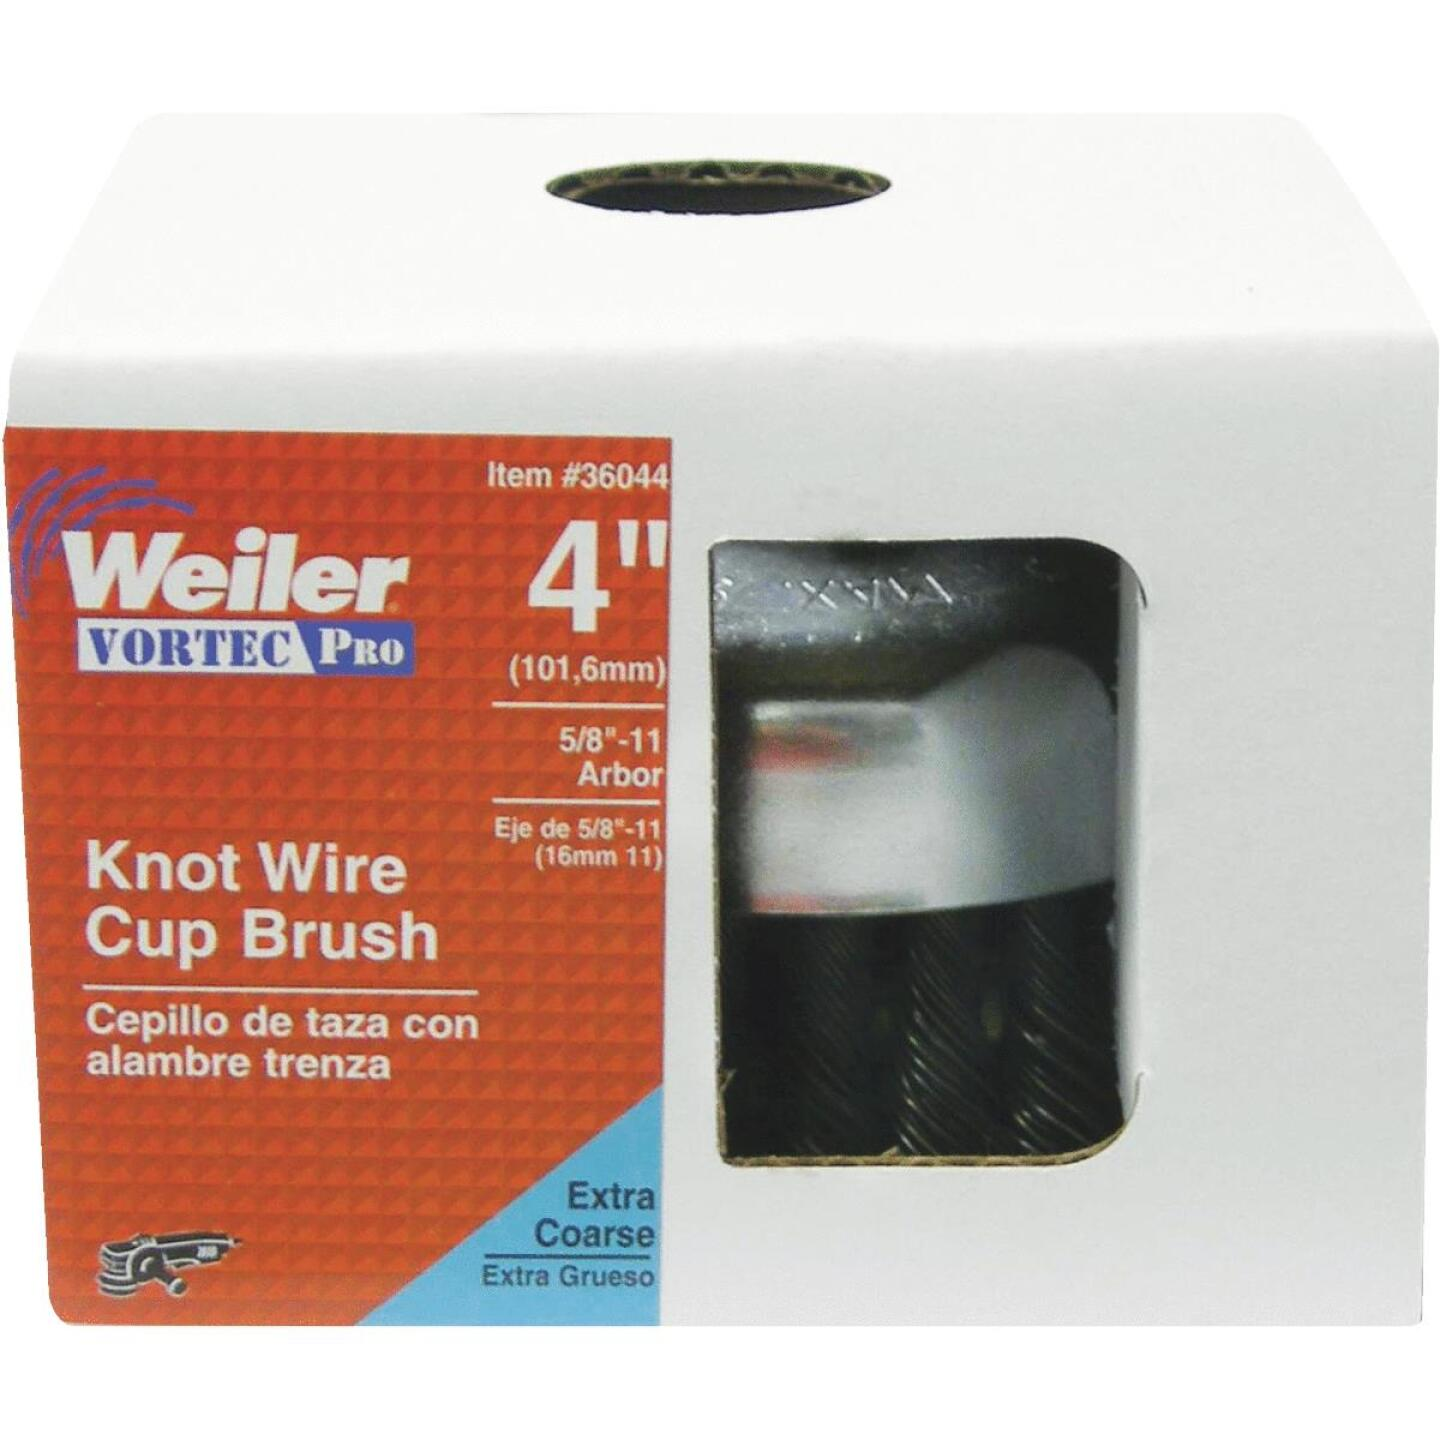 Weiler Vortec 4 In. Knotted 0.02 In. Angle Grinder Wire Brush Image 2